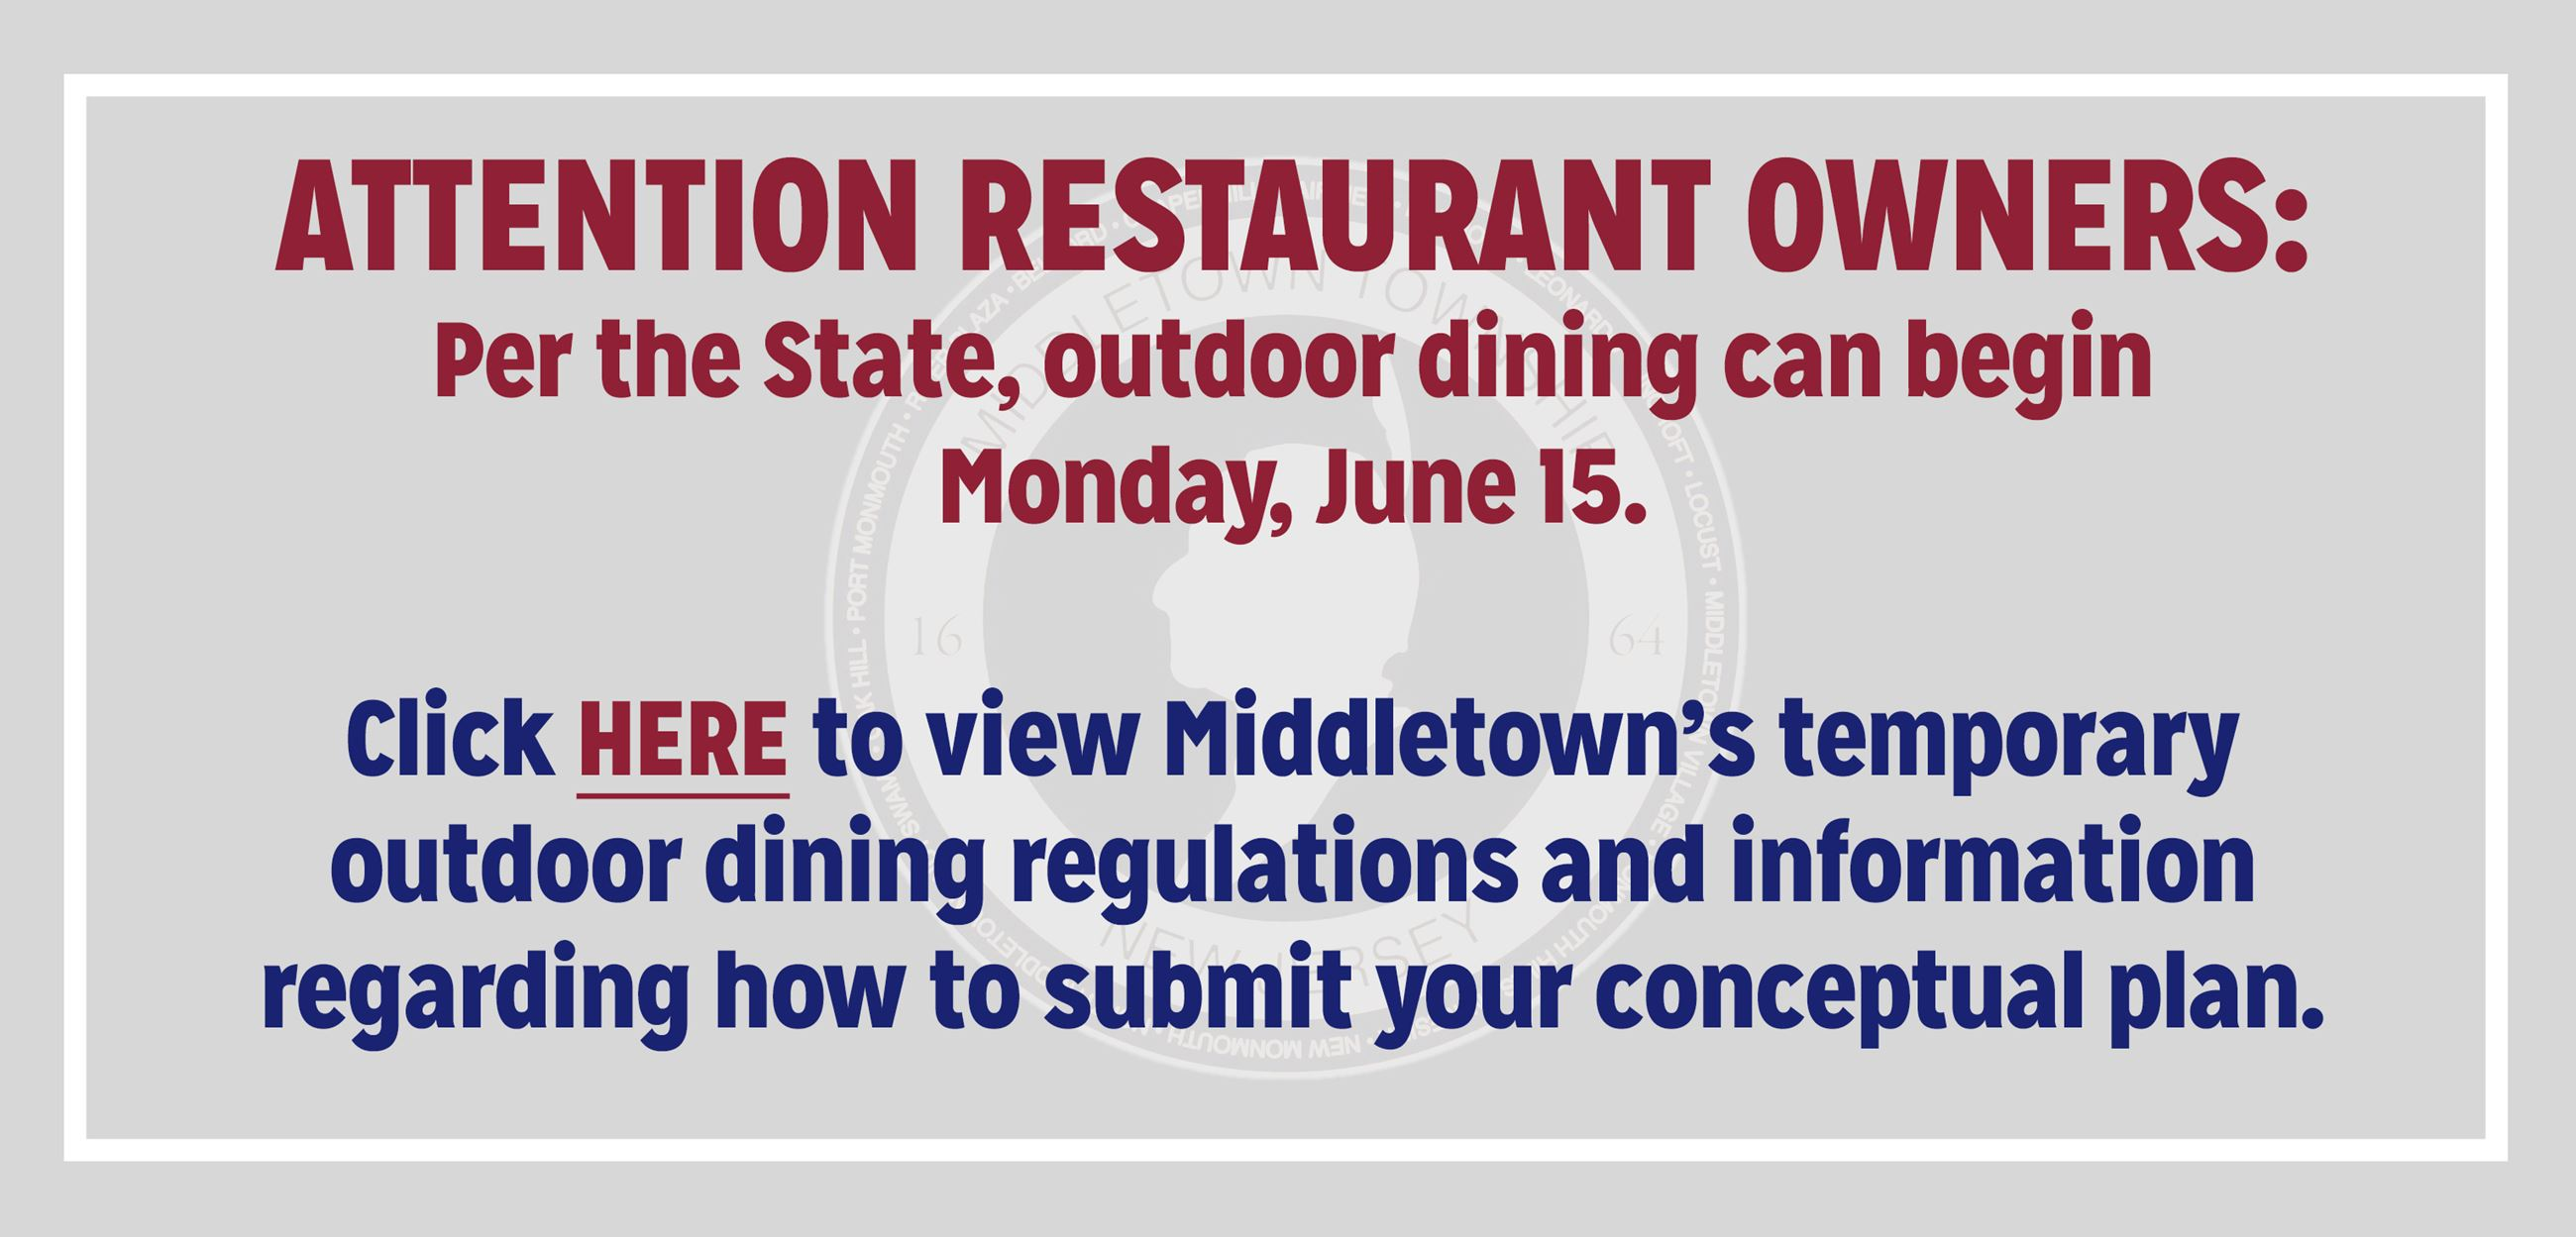 Temporary Outdoor Dining Regulations